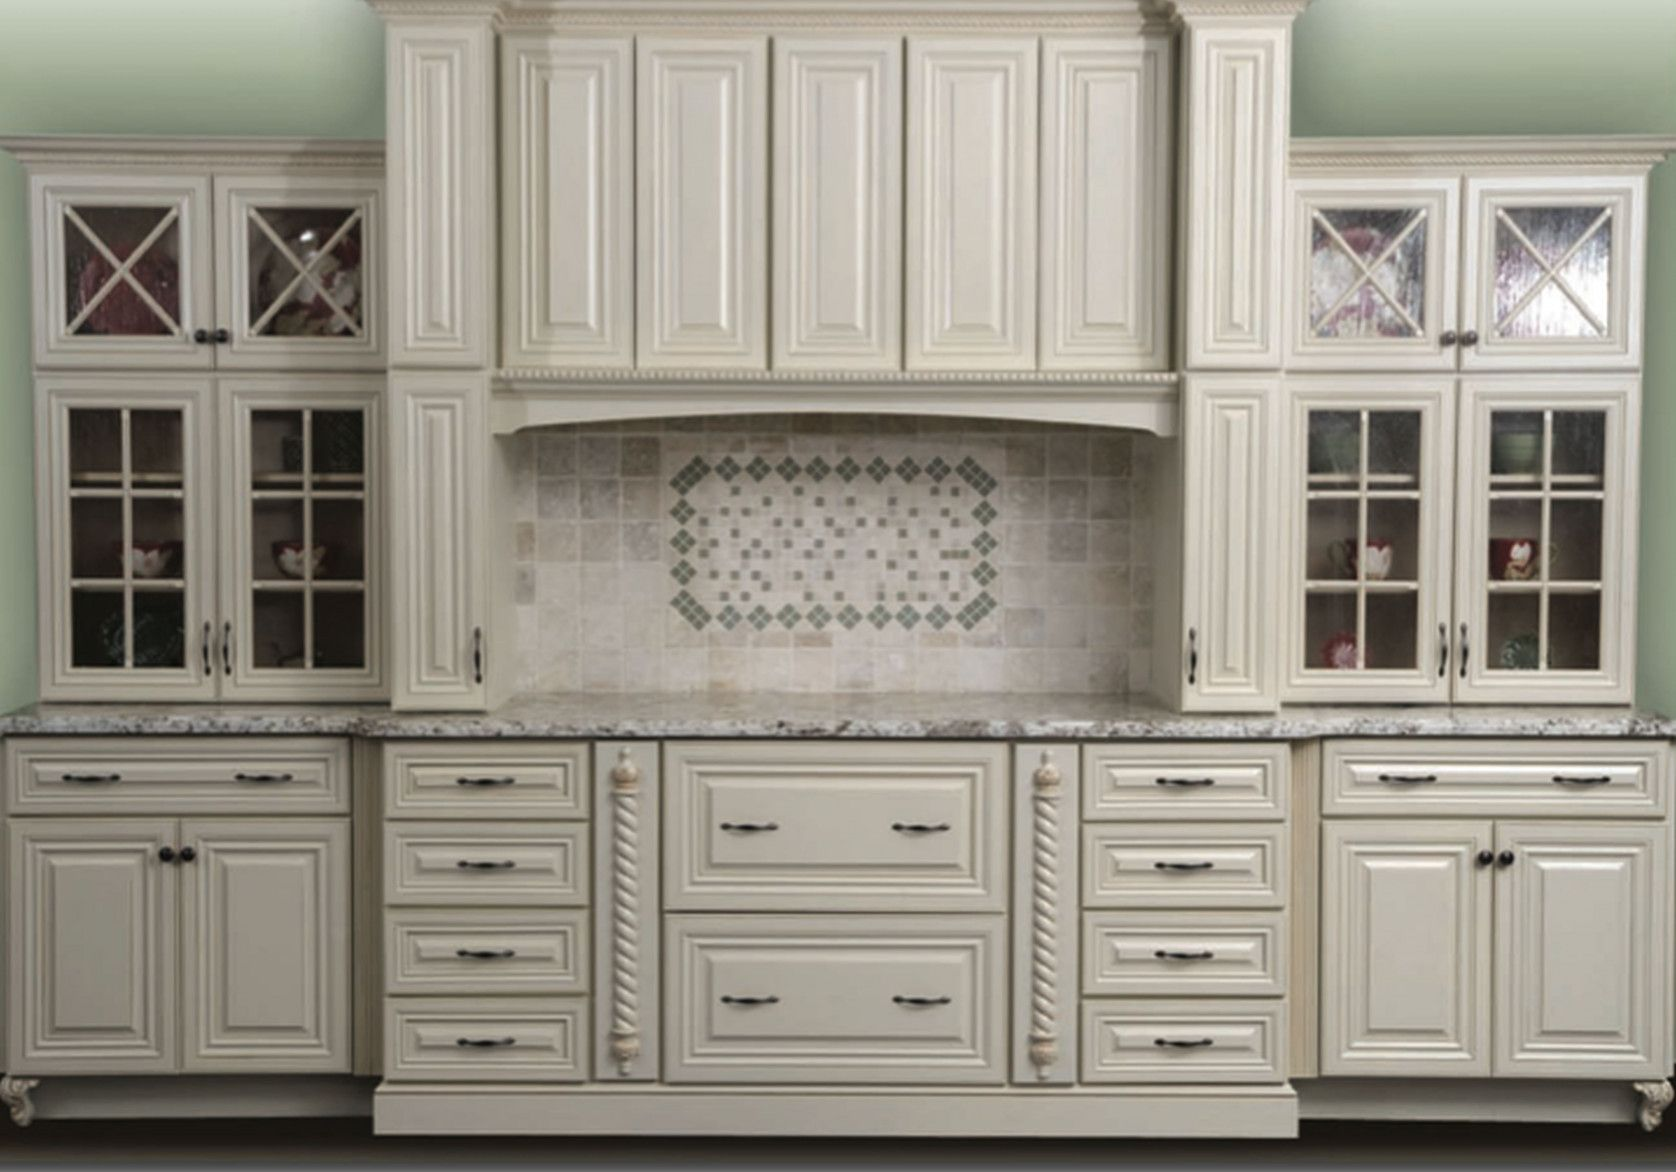 top discount doors set kitchen cabinet size cabinets home accessories canada cheap canadian online natty best full design ontario starter ideas hardware bulk manufacturers toronto images